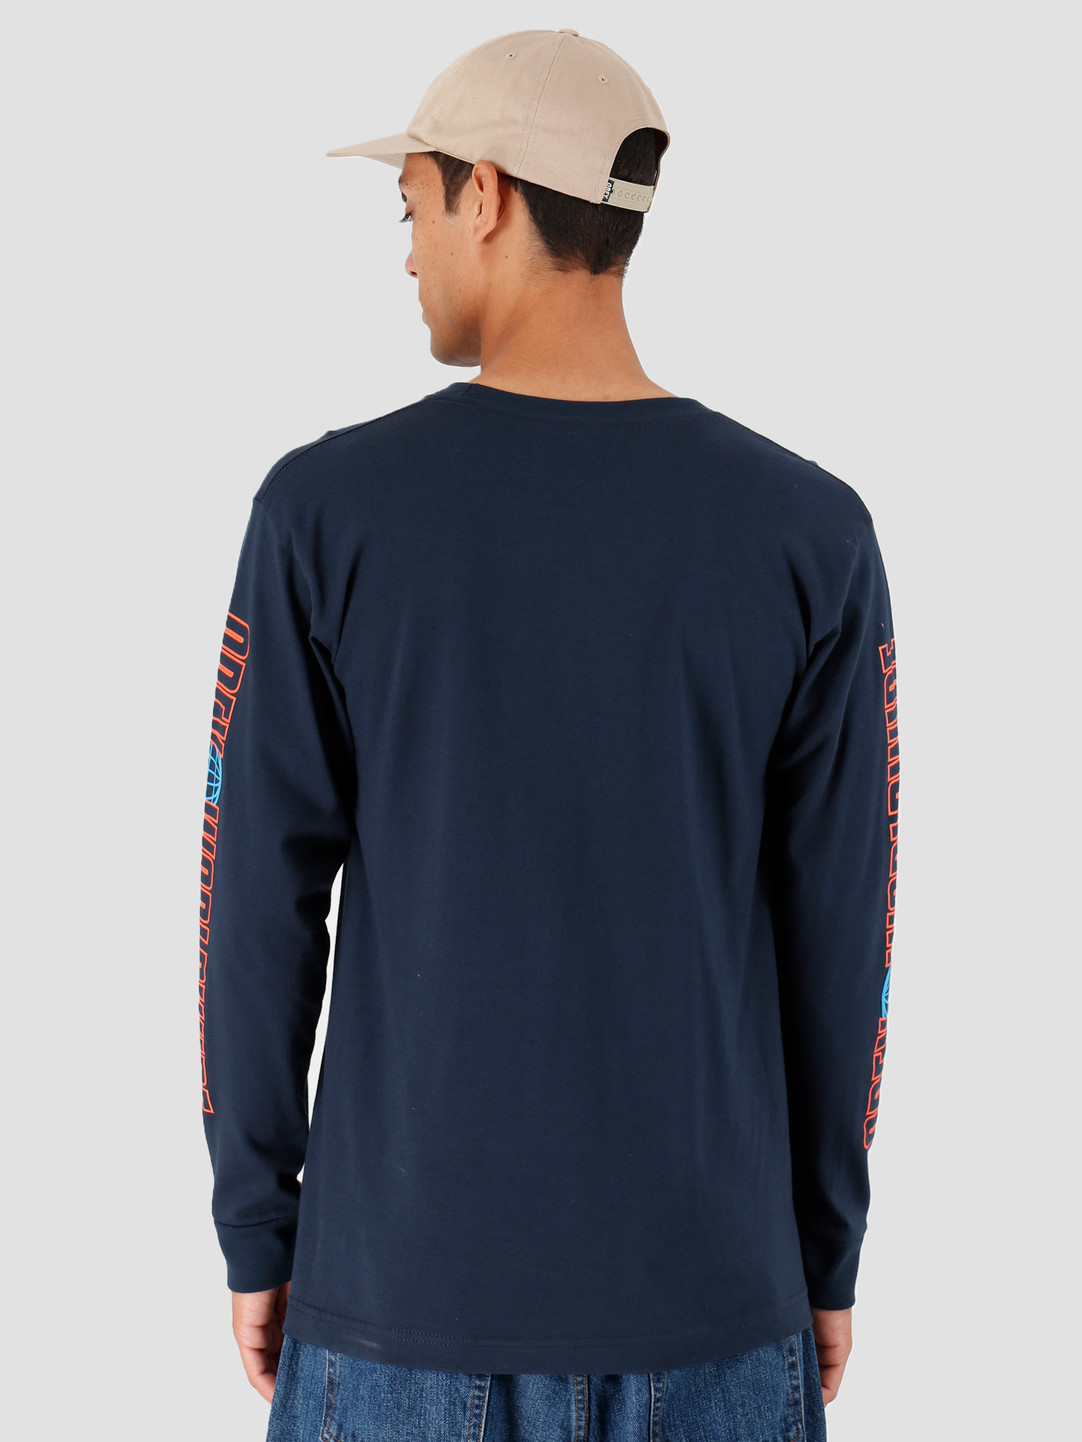 Obey Obey Worldwide 2 Navy 164902101-NVY